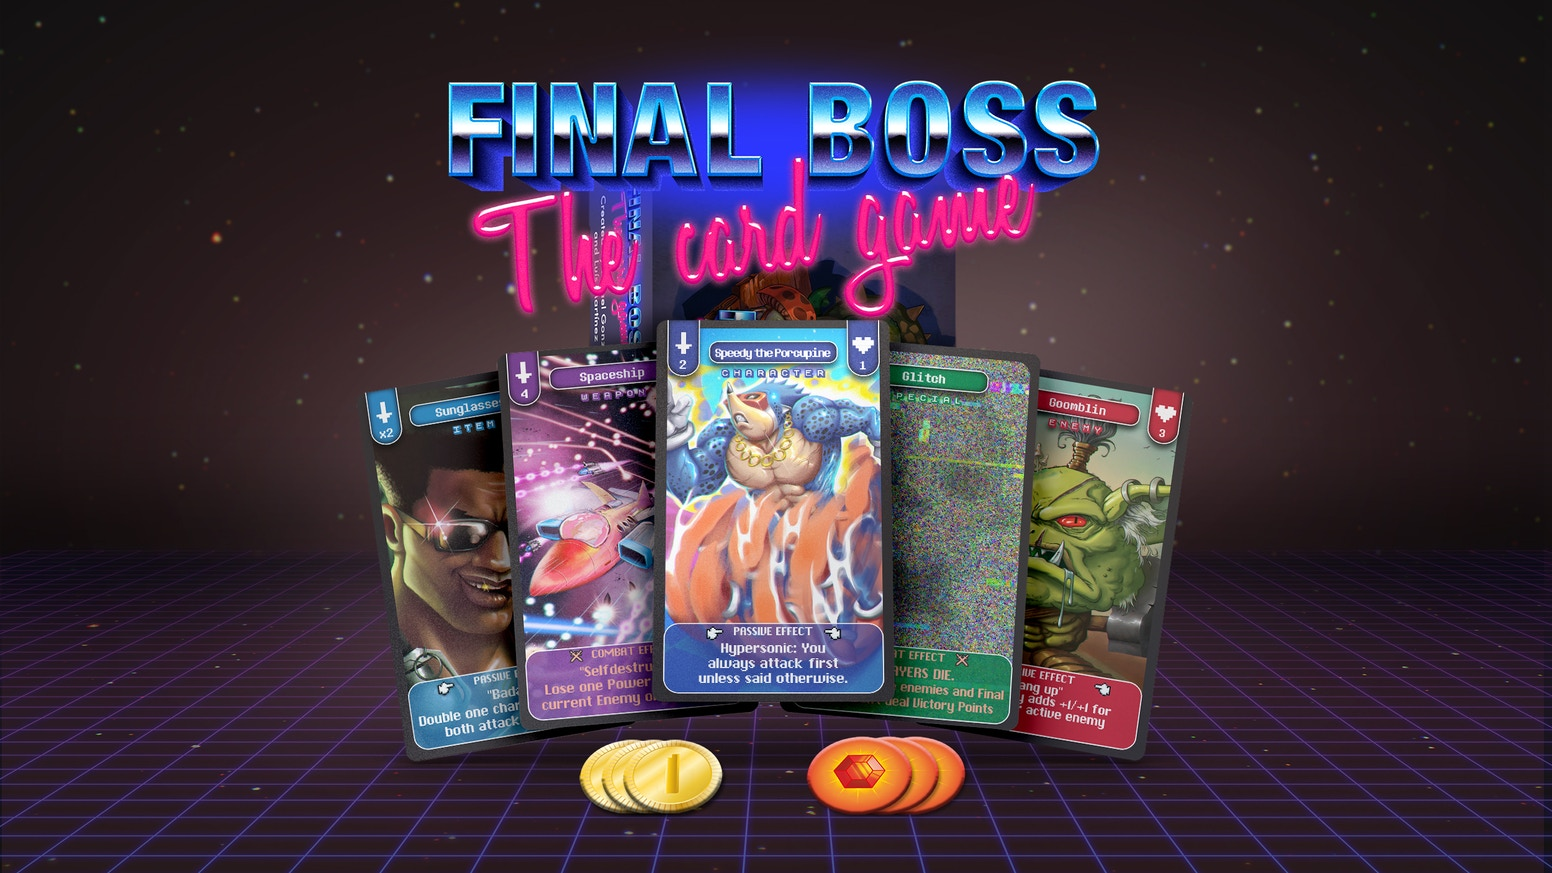 A competitive card game where players fight monsters, sabotage each other and try to defeat the Final Boss.